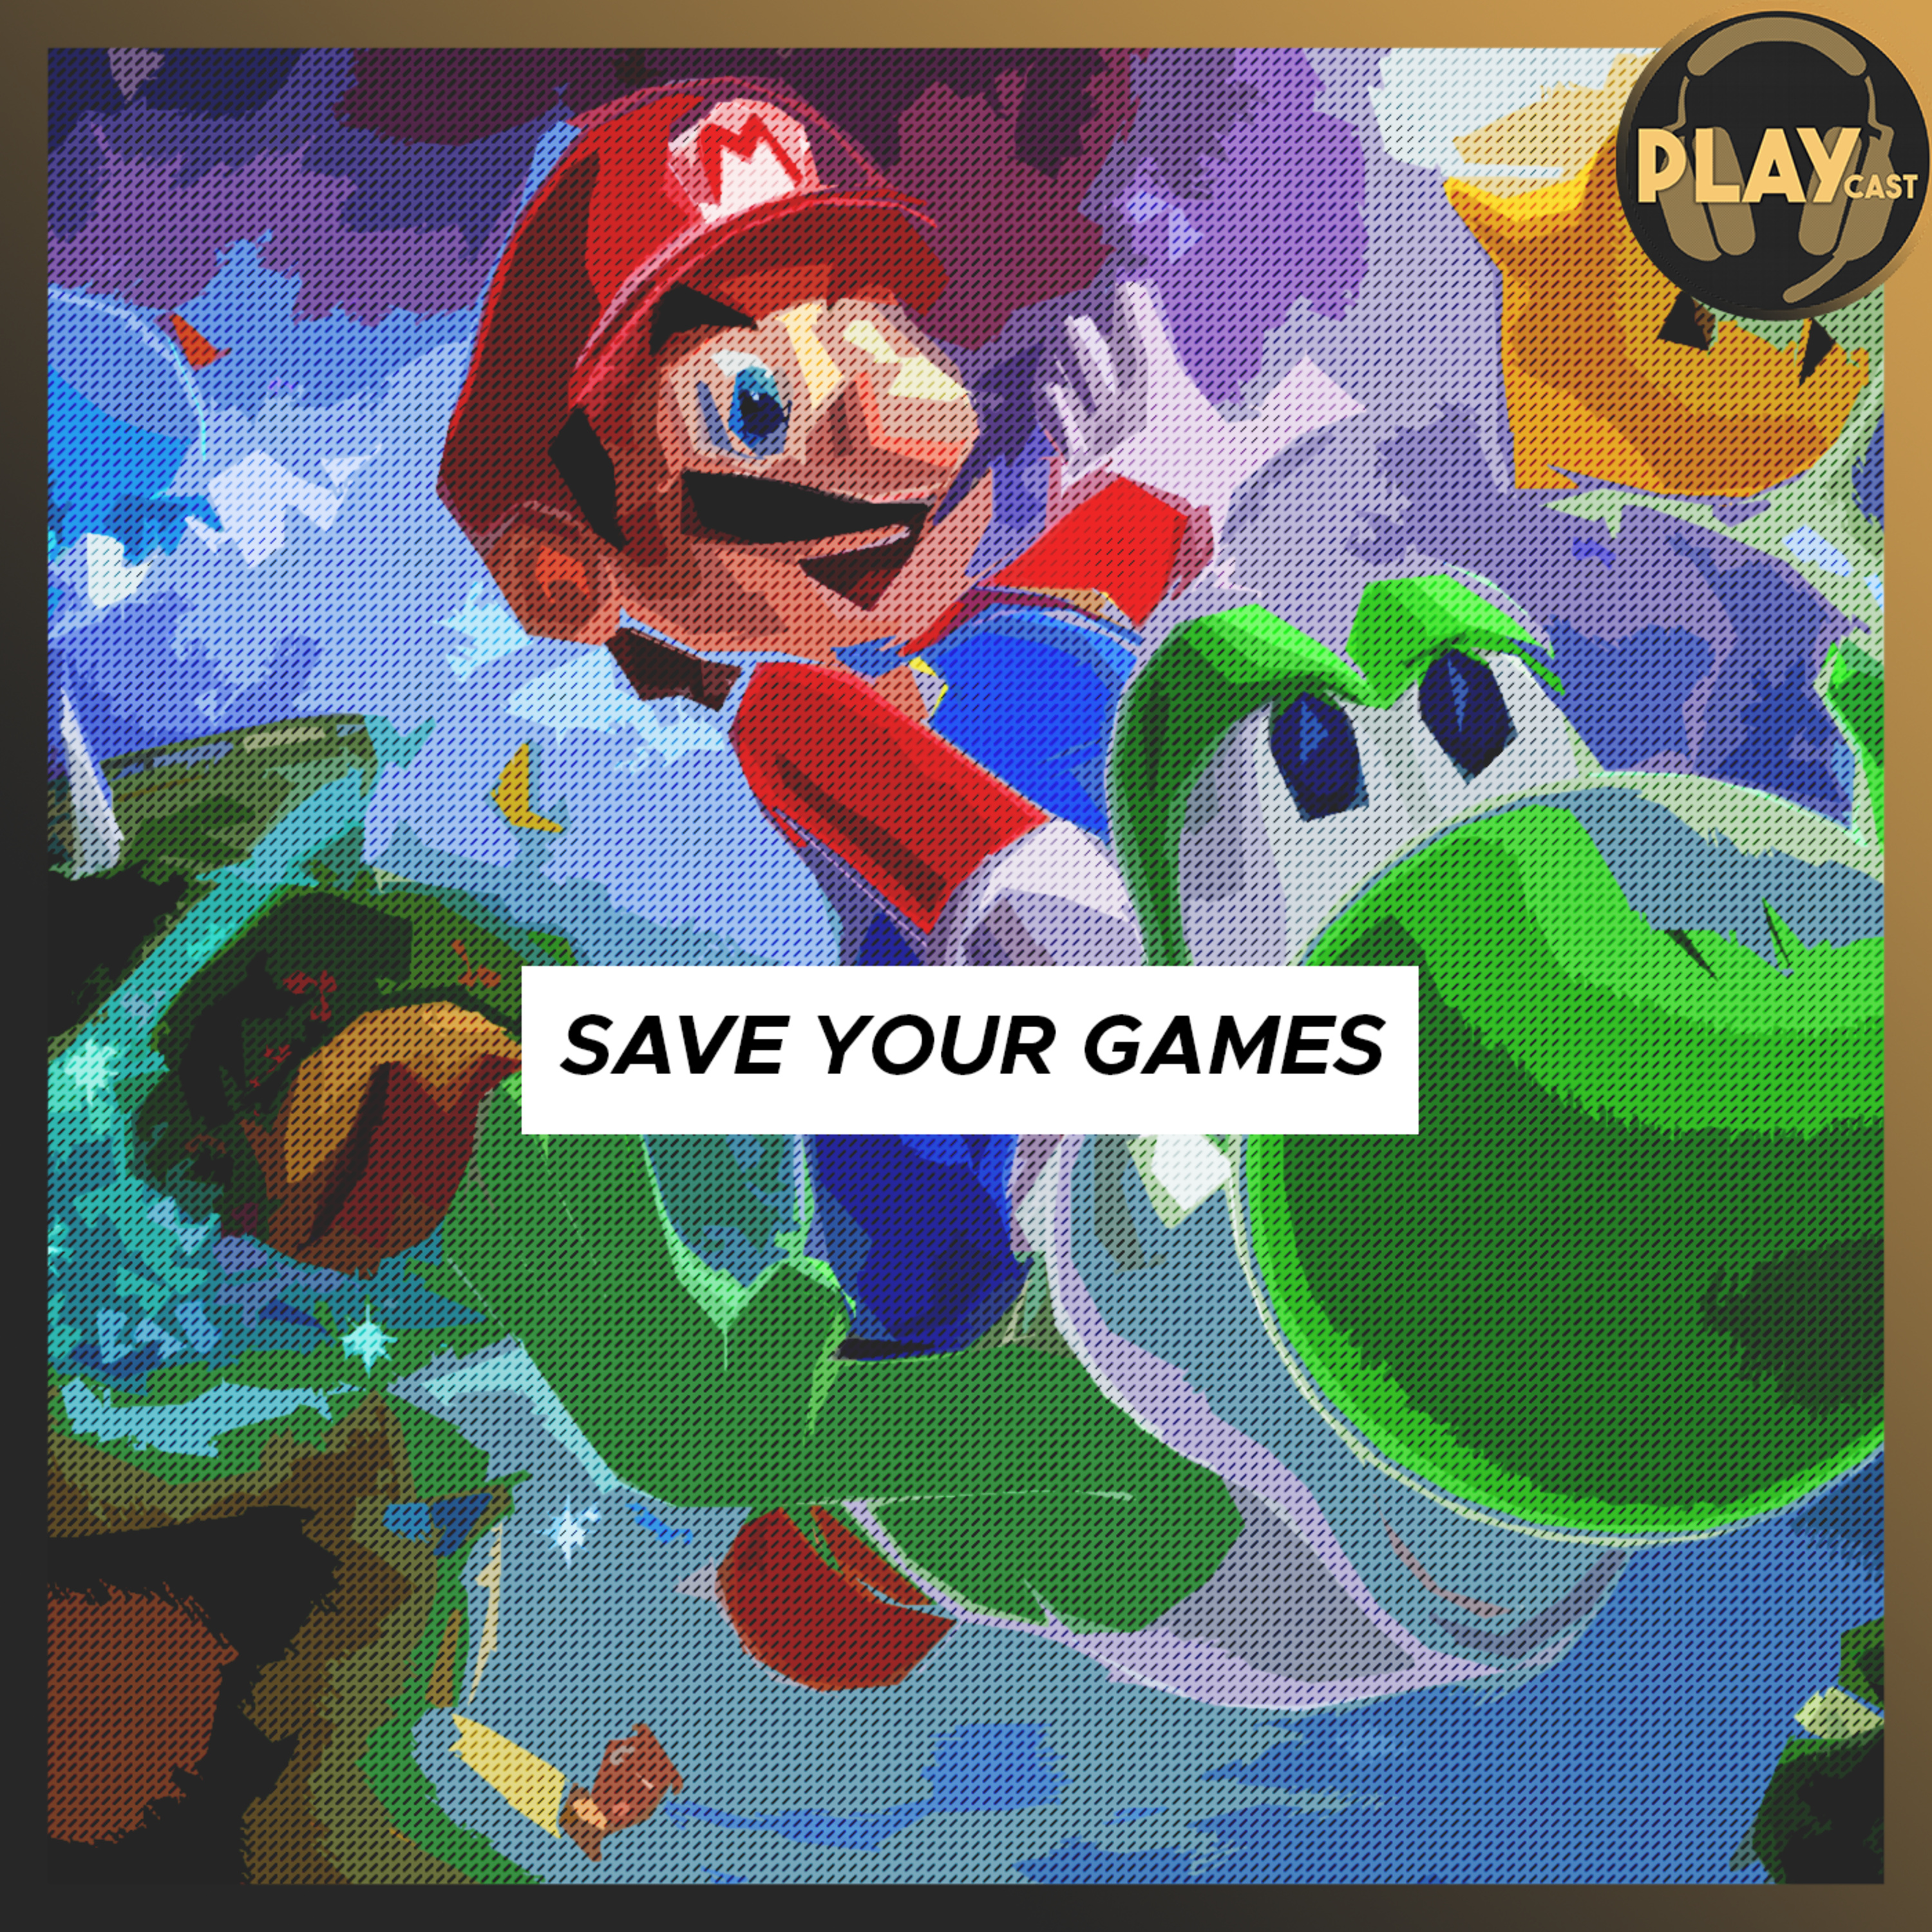 PLAYCast #16 - Save Your Games